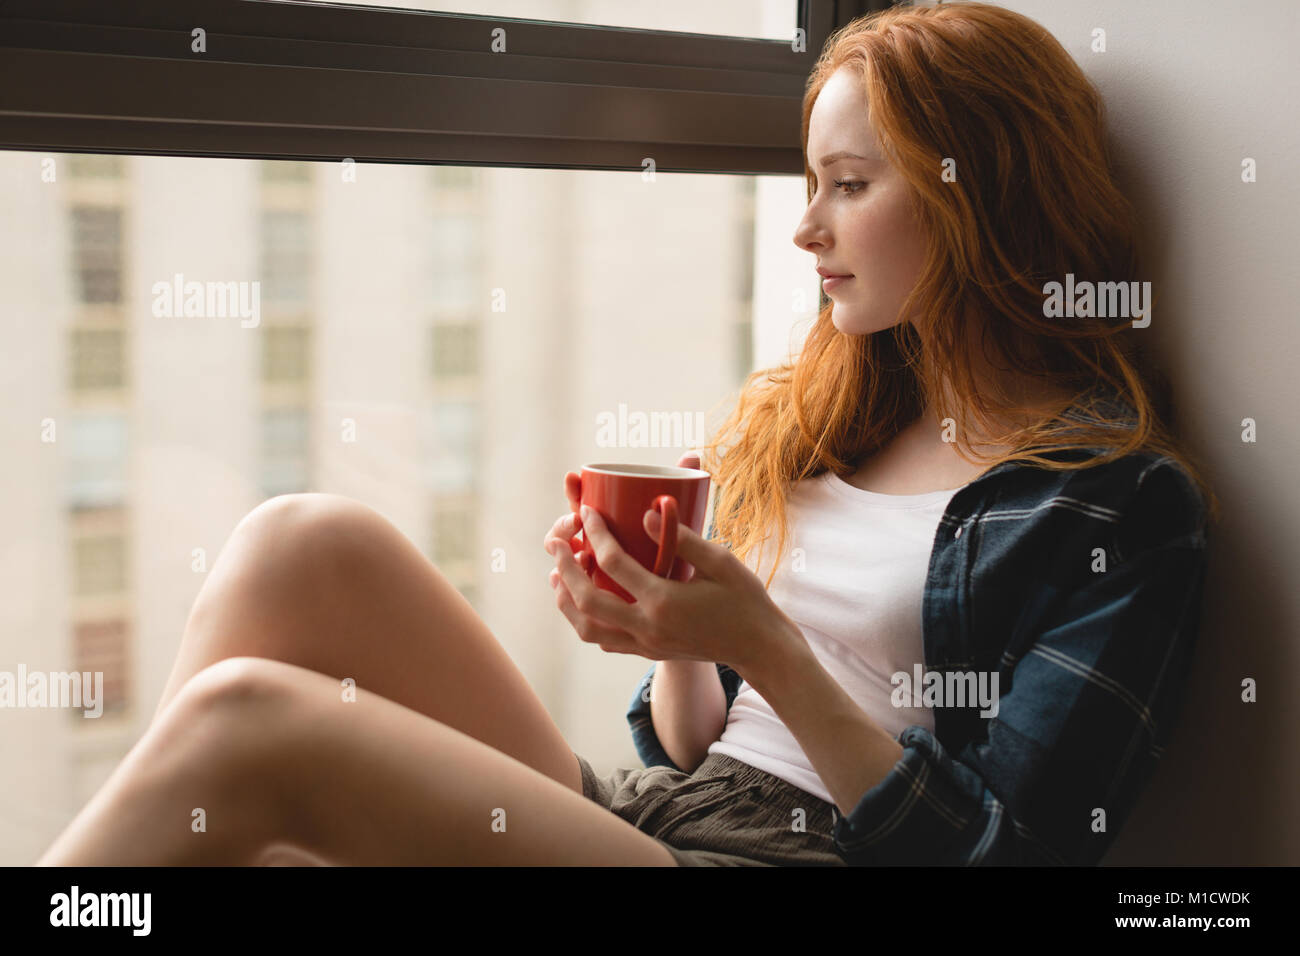 Woman having coffee at home - Stock Image